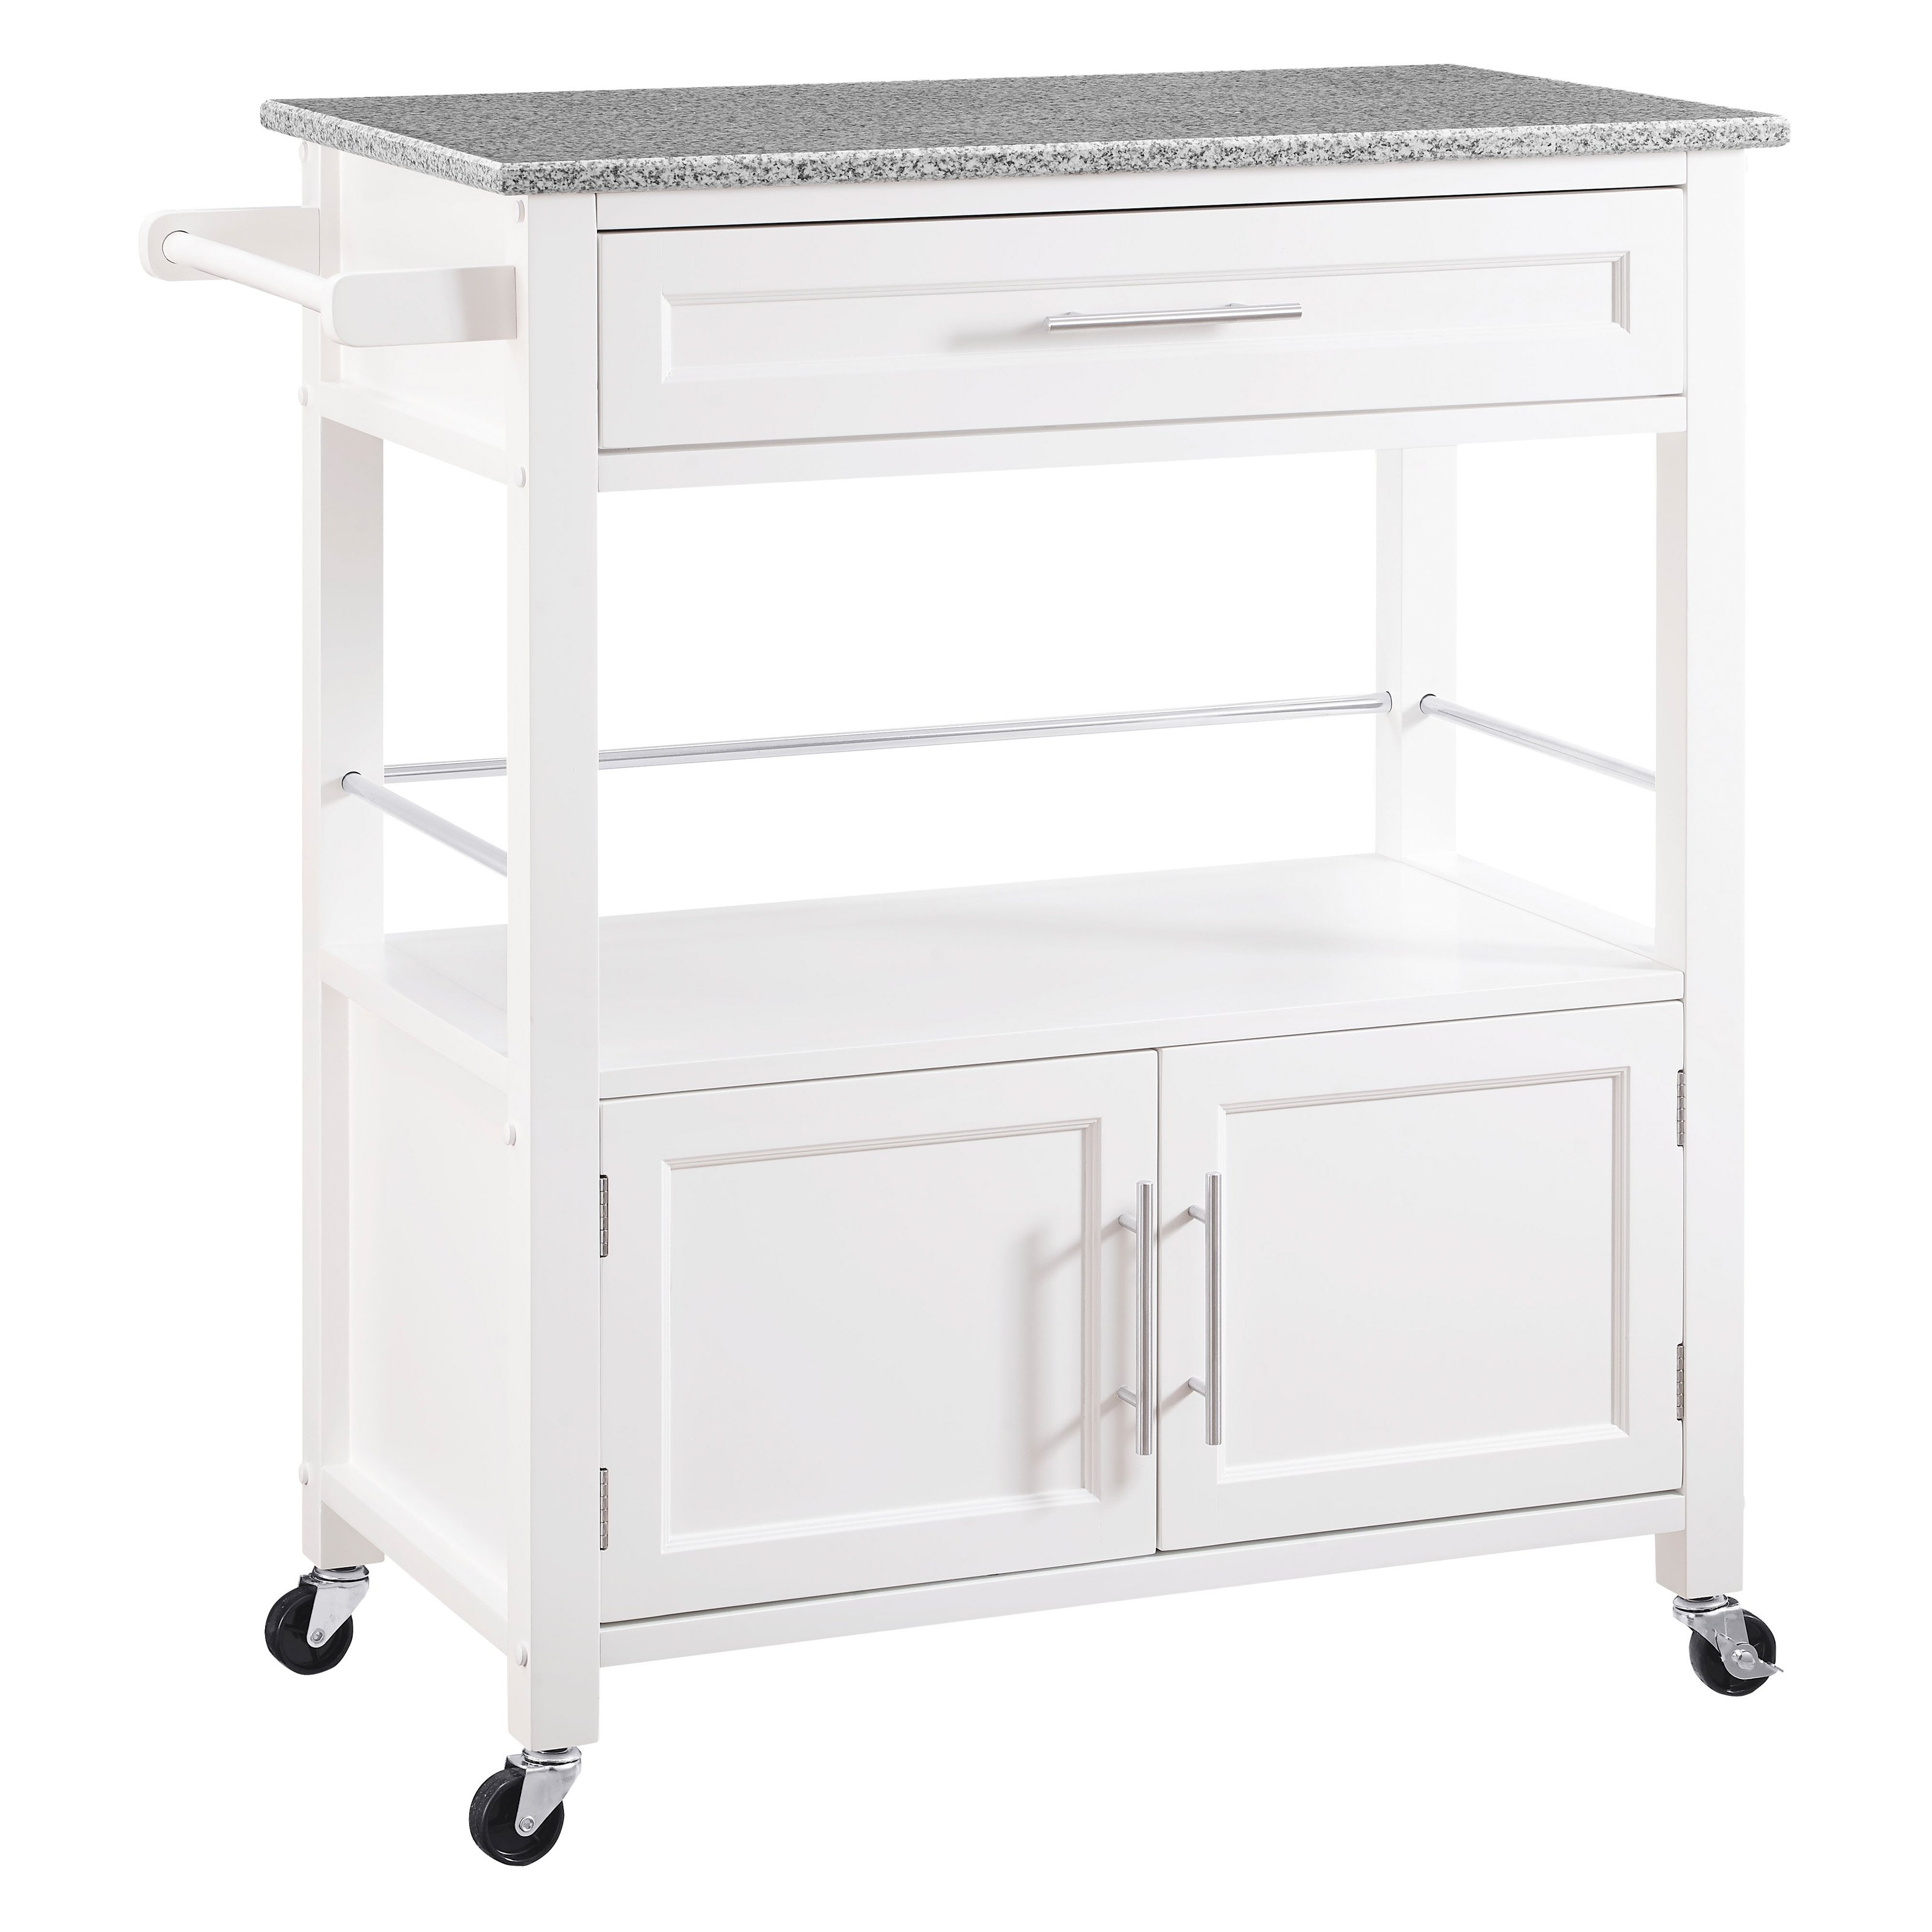 Cameron White Kitchen Cart with Granite Top by Linon Home Dᅢᄅcor Products Inc.